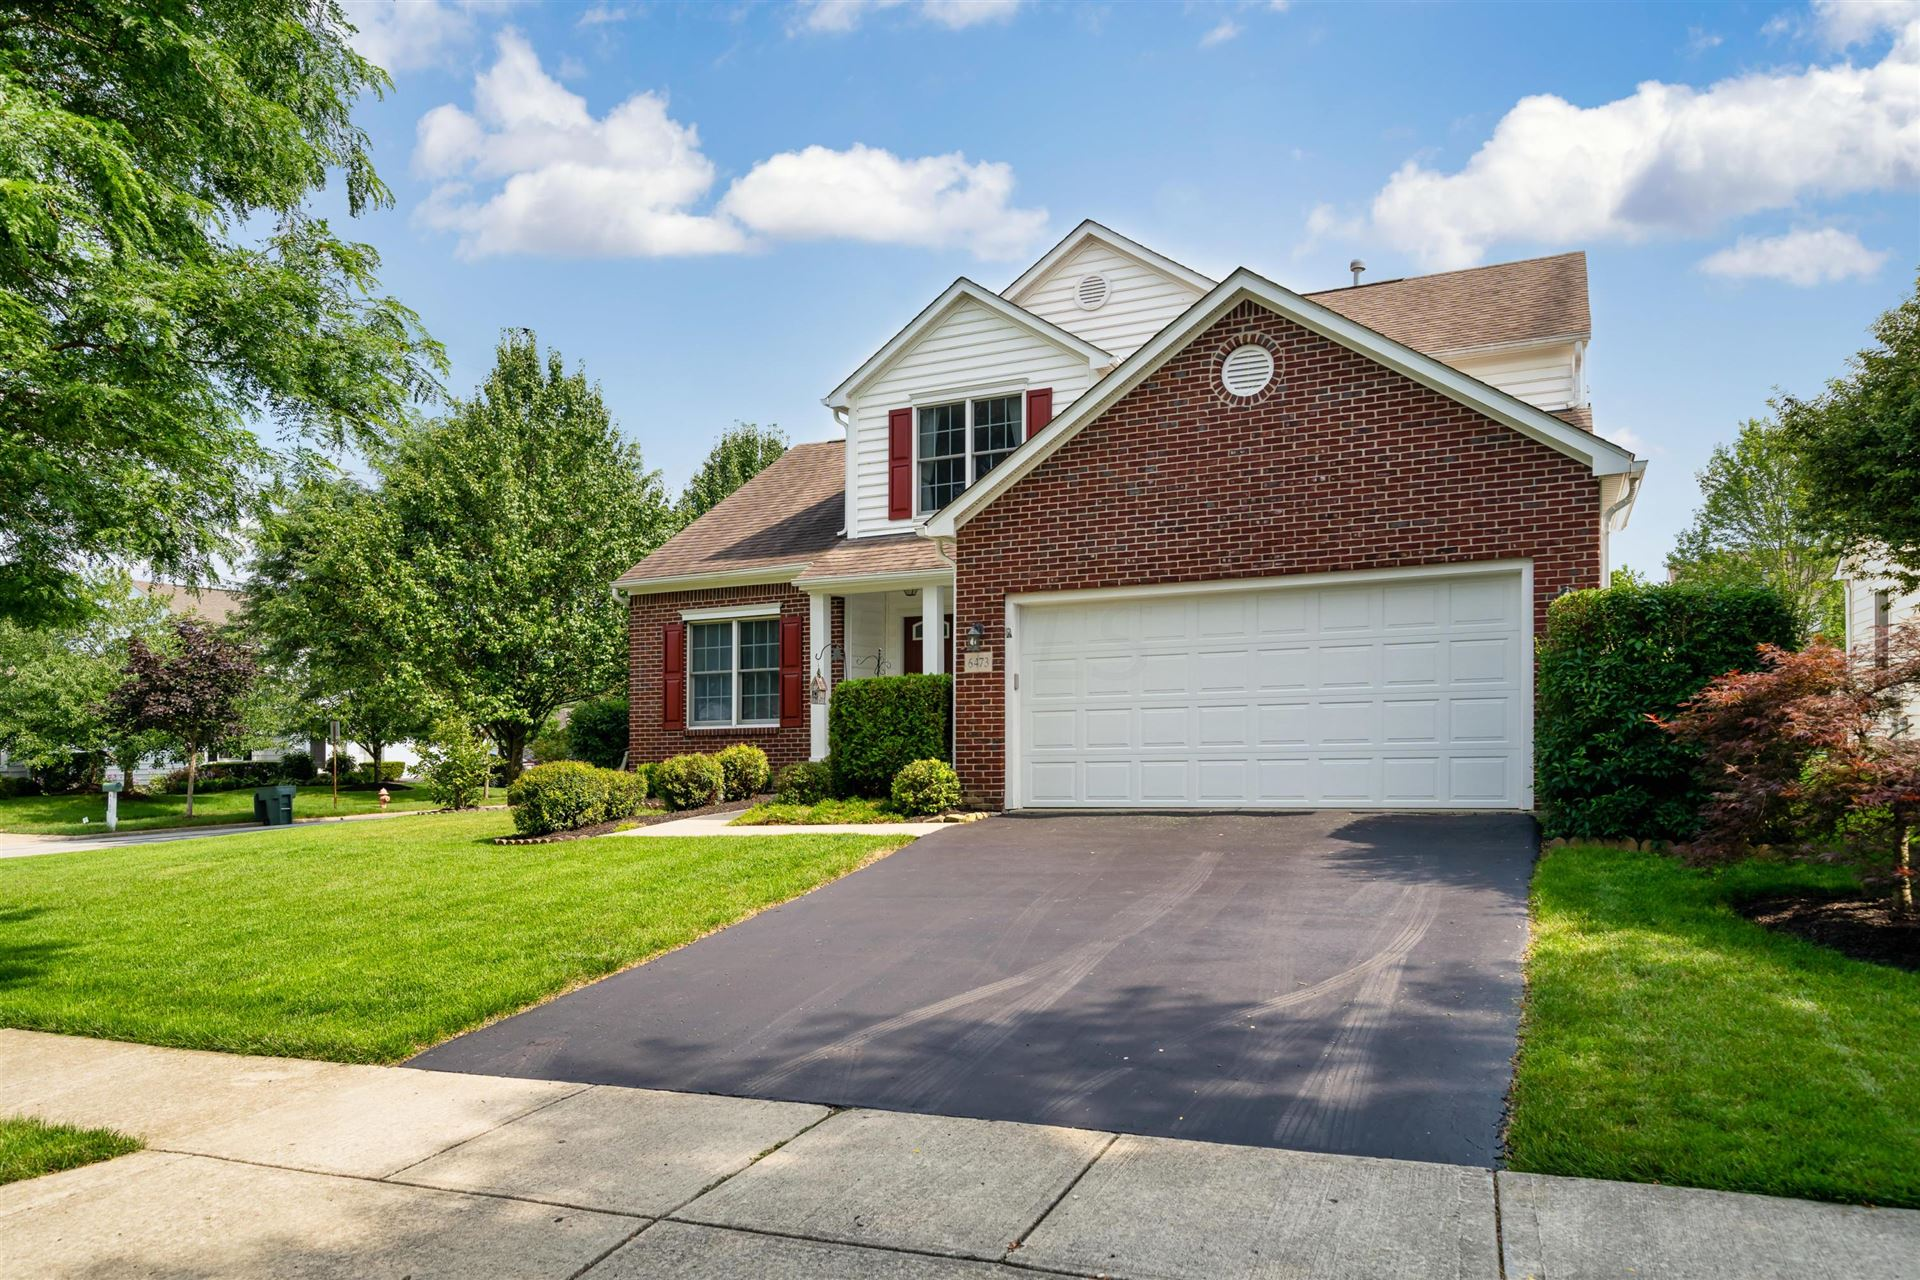 Photo of 6473 Commons Park Court, New Albany, OH 43054 (MLS # 221026429)